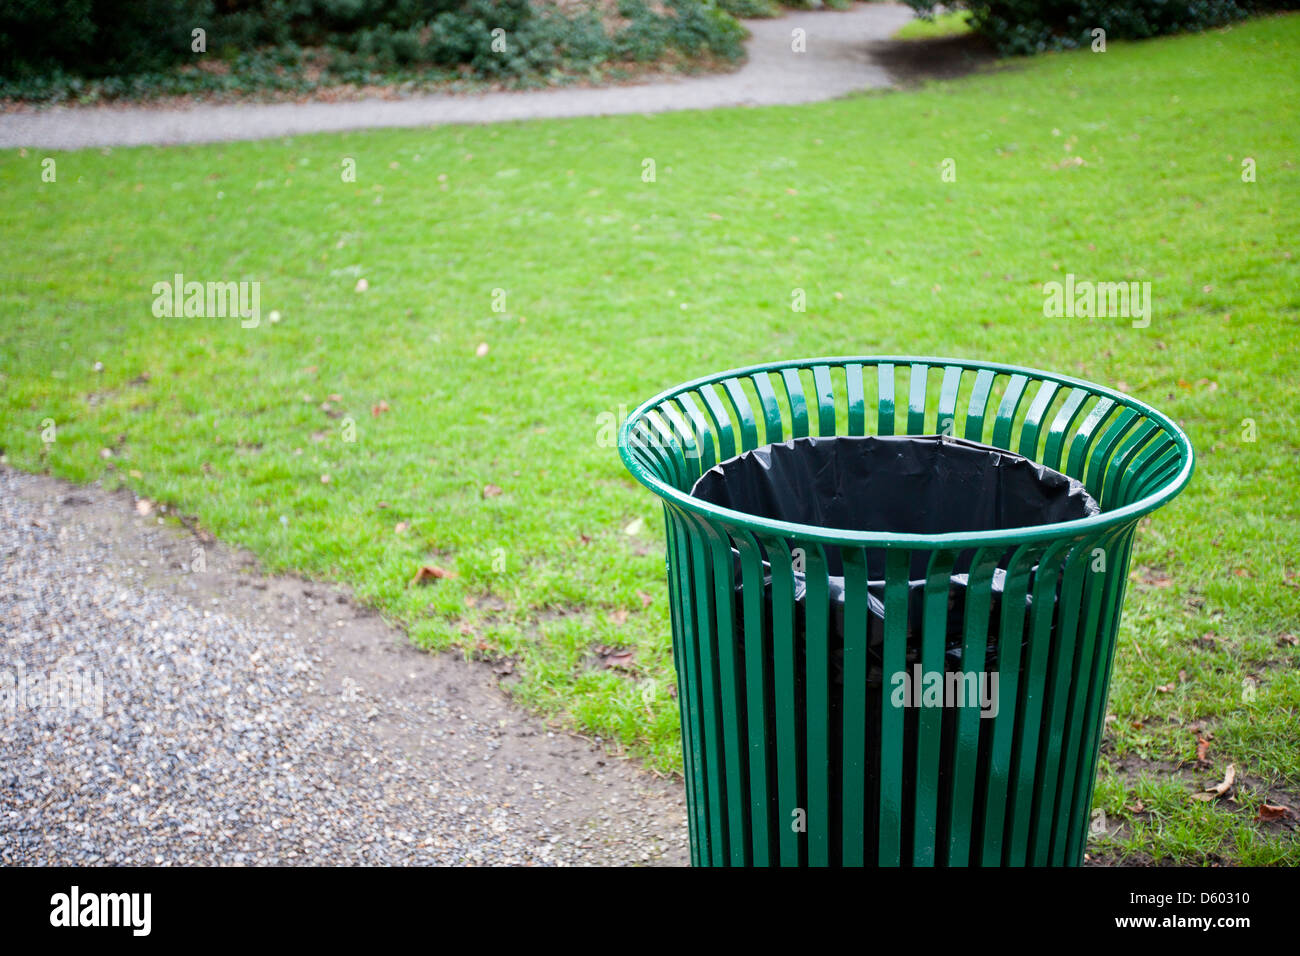 Trash can in  park - Stock Image